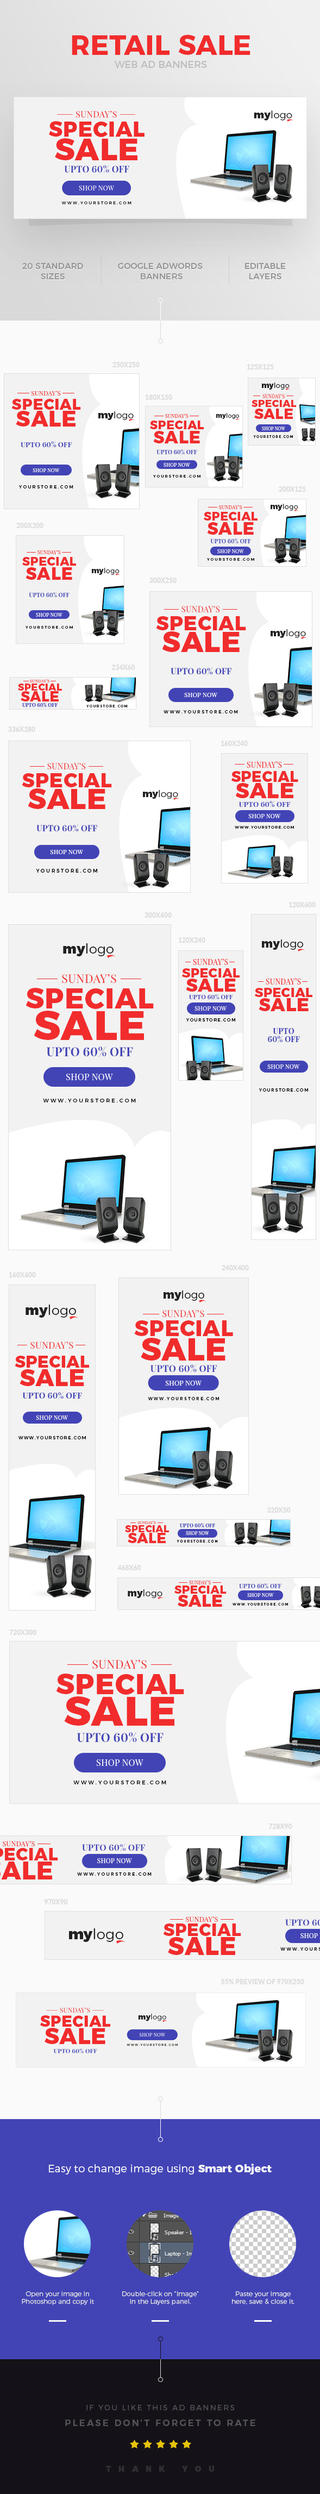 Retail Sale Web Ad Banner by webduckdesign